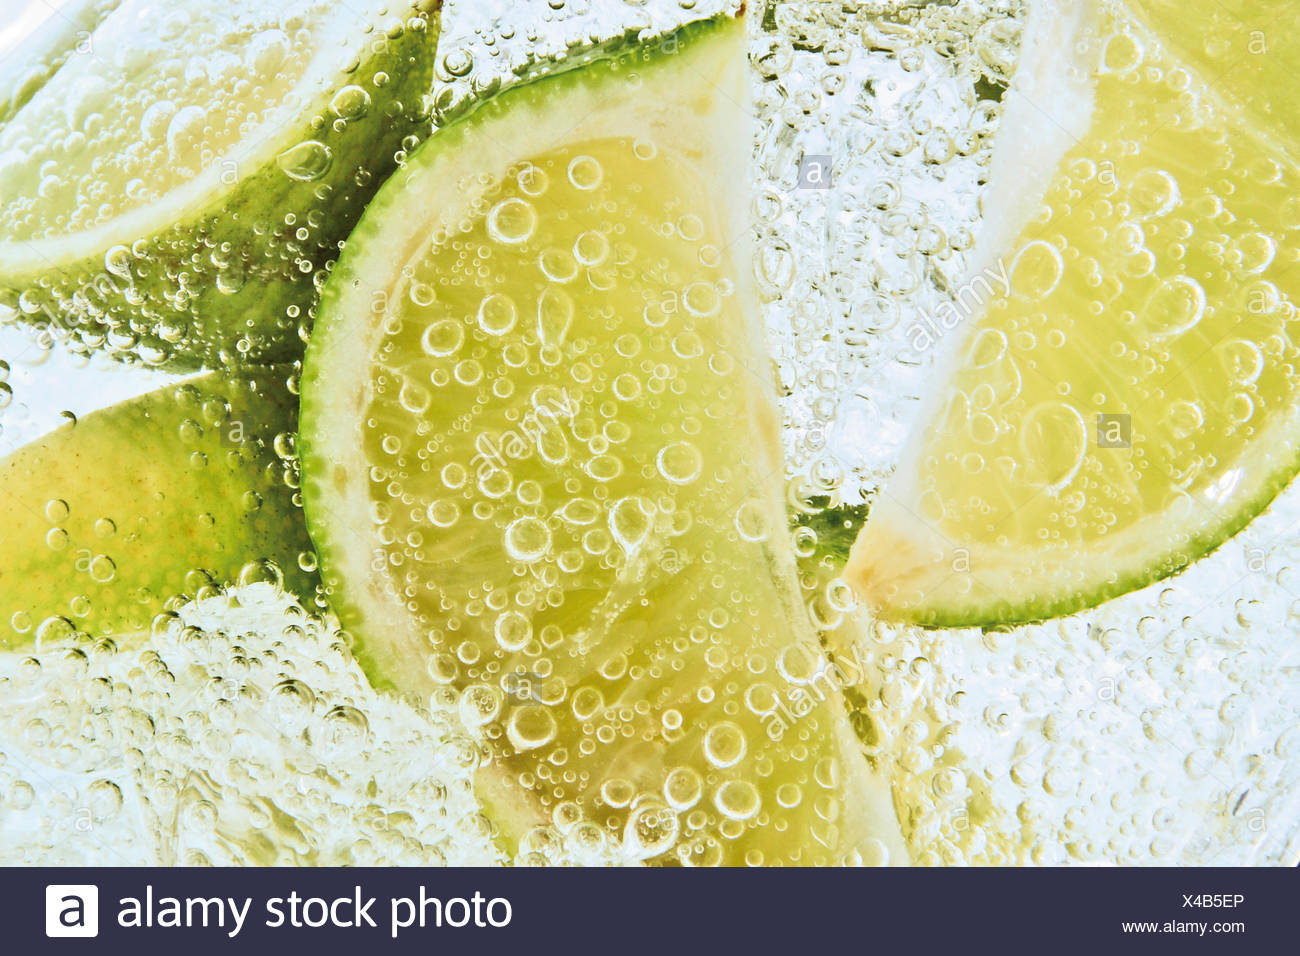 Lime slices in a fizzy drink, close-up - Stock Image